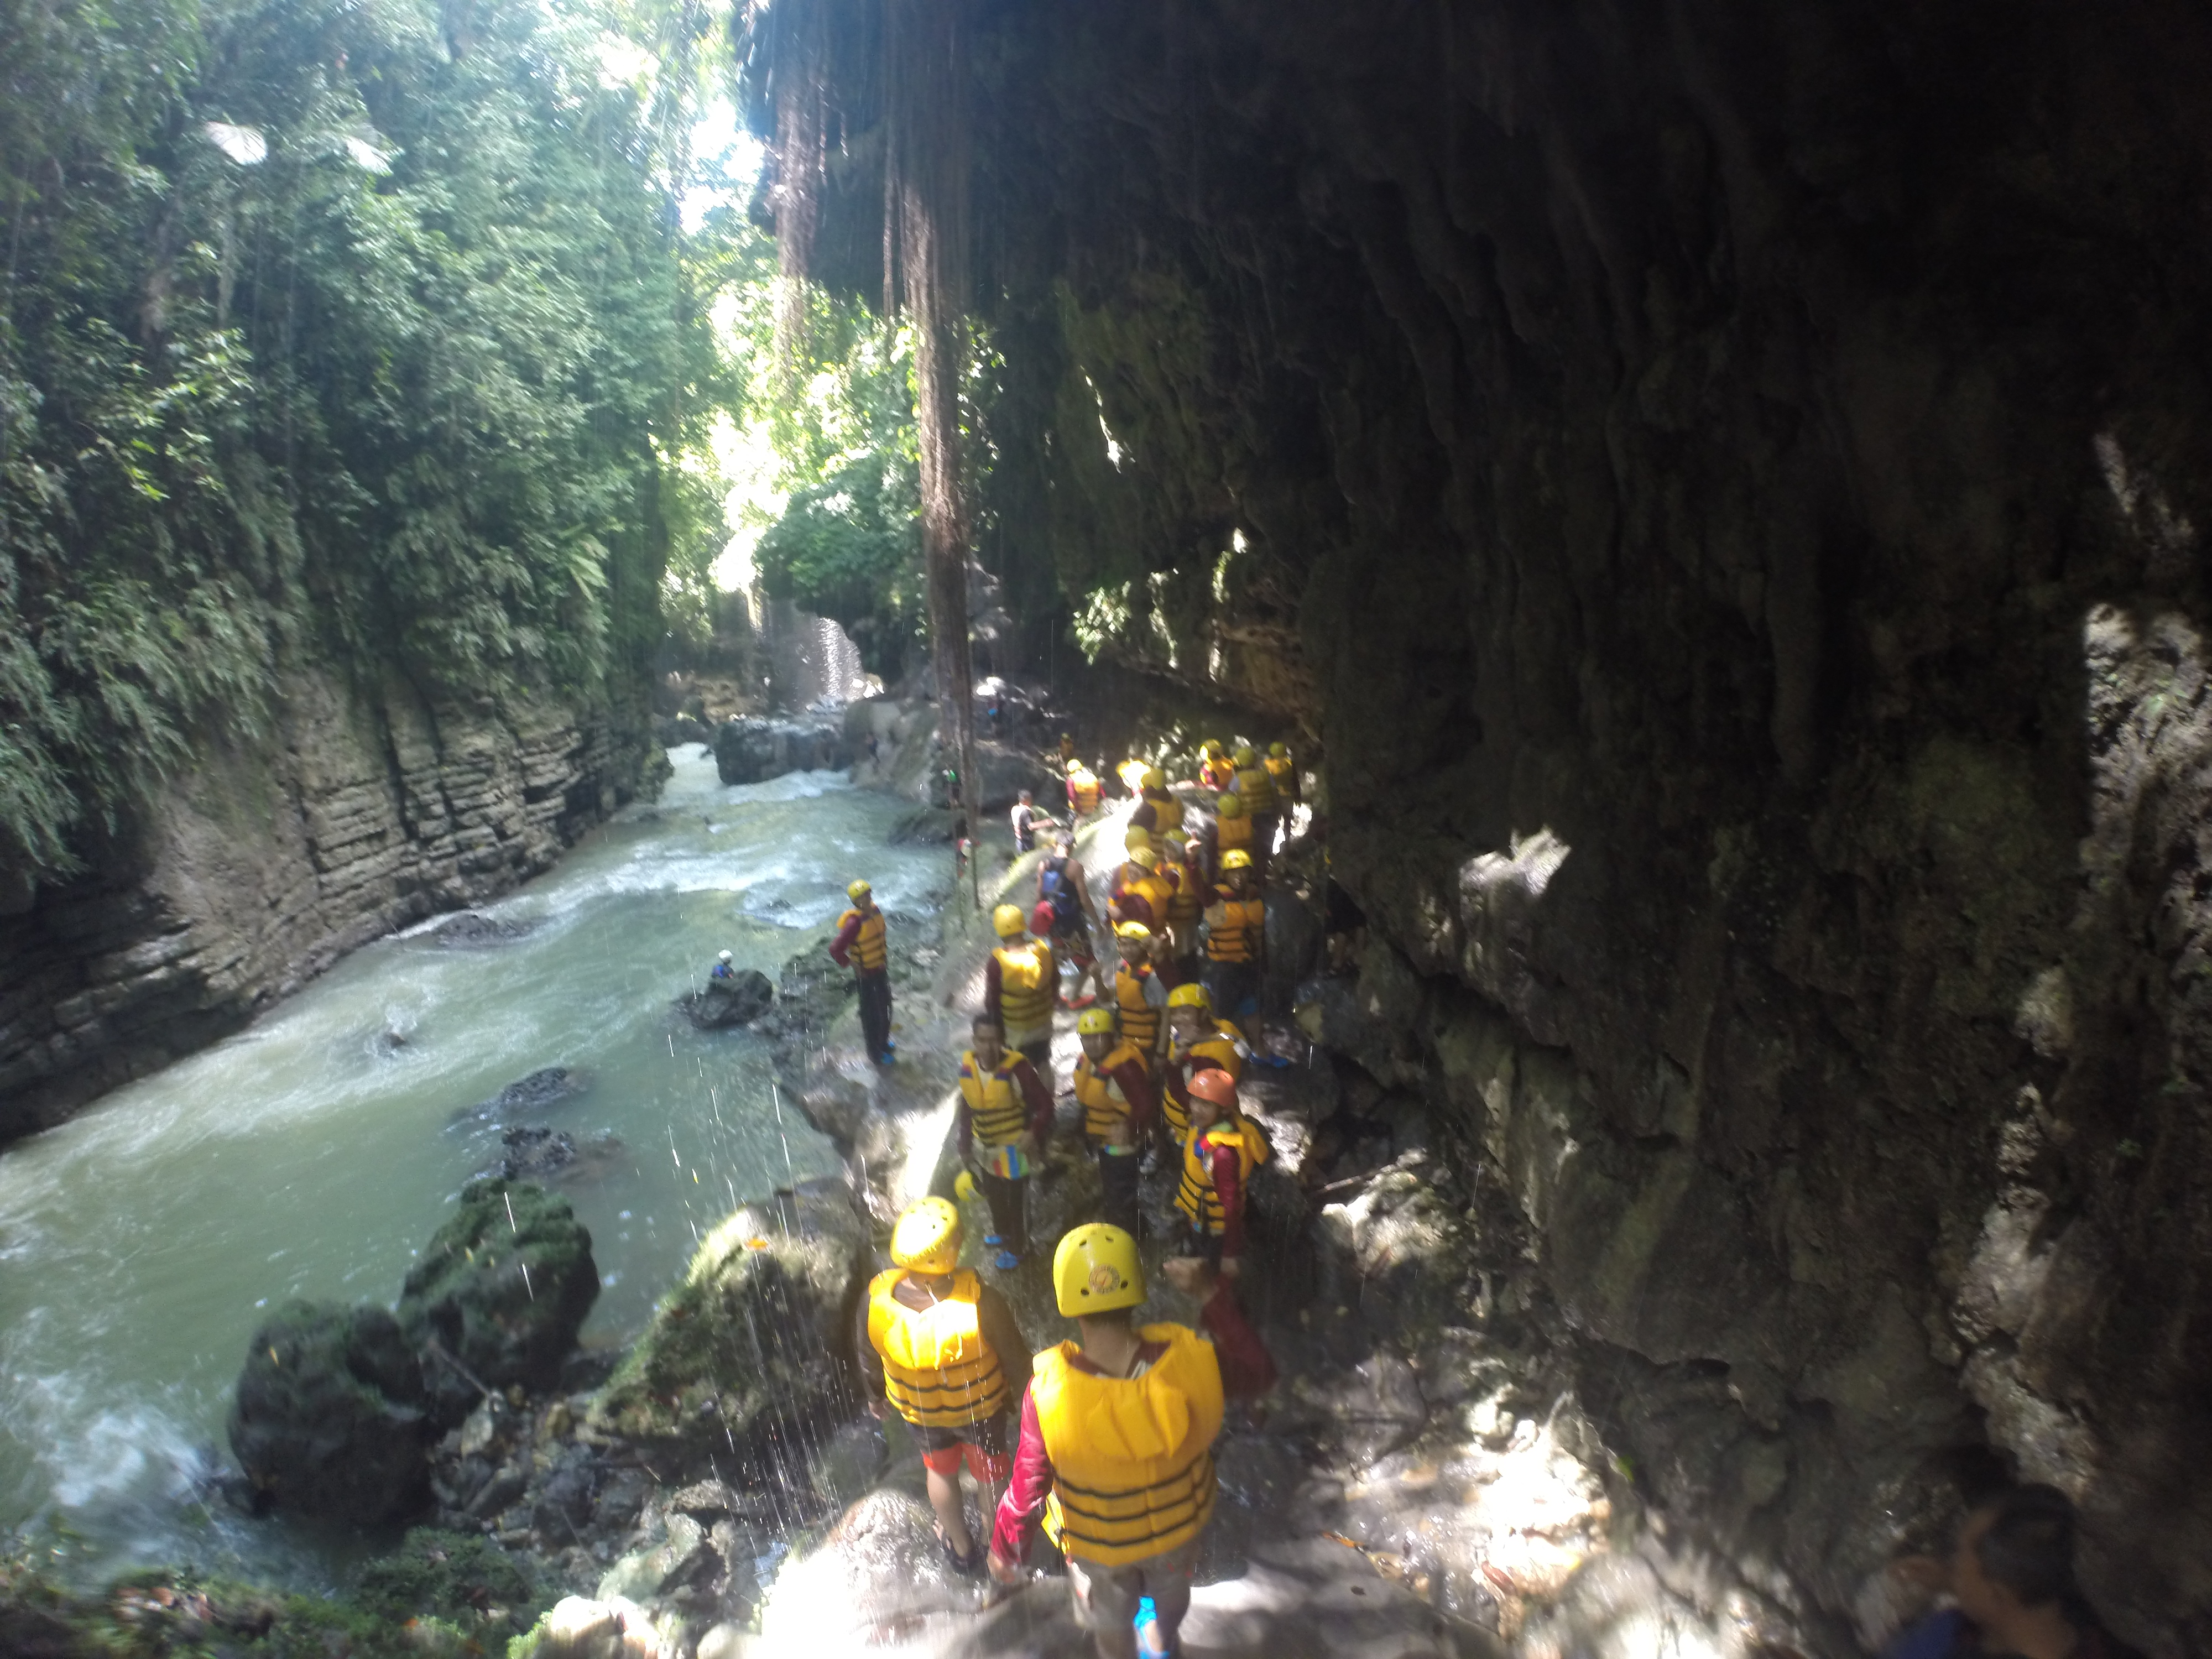 File:Body rafting pangandaran.jpg